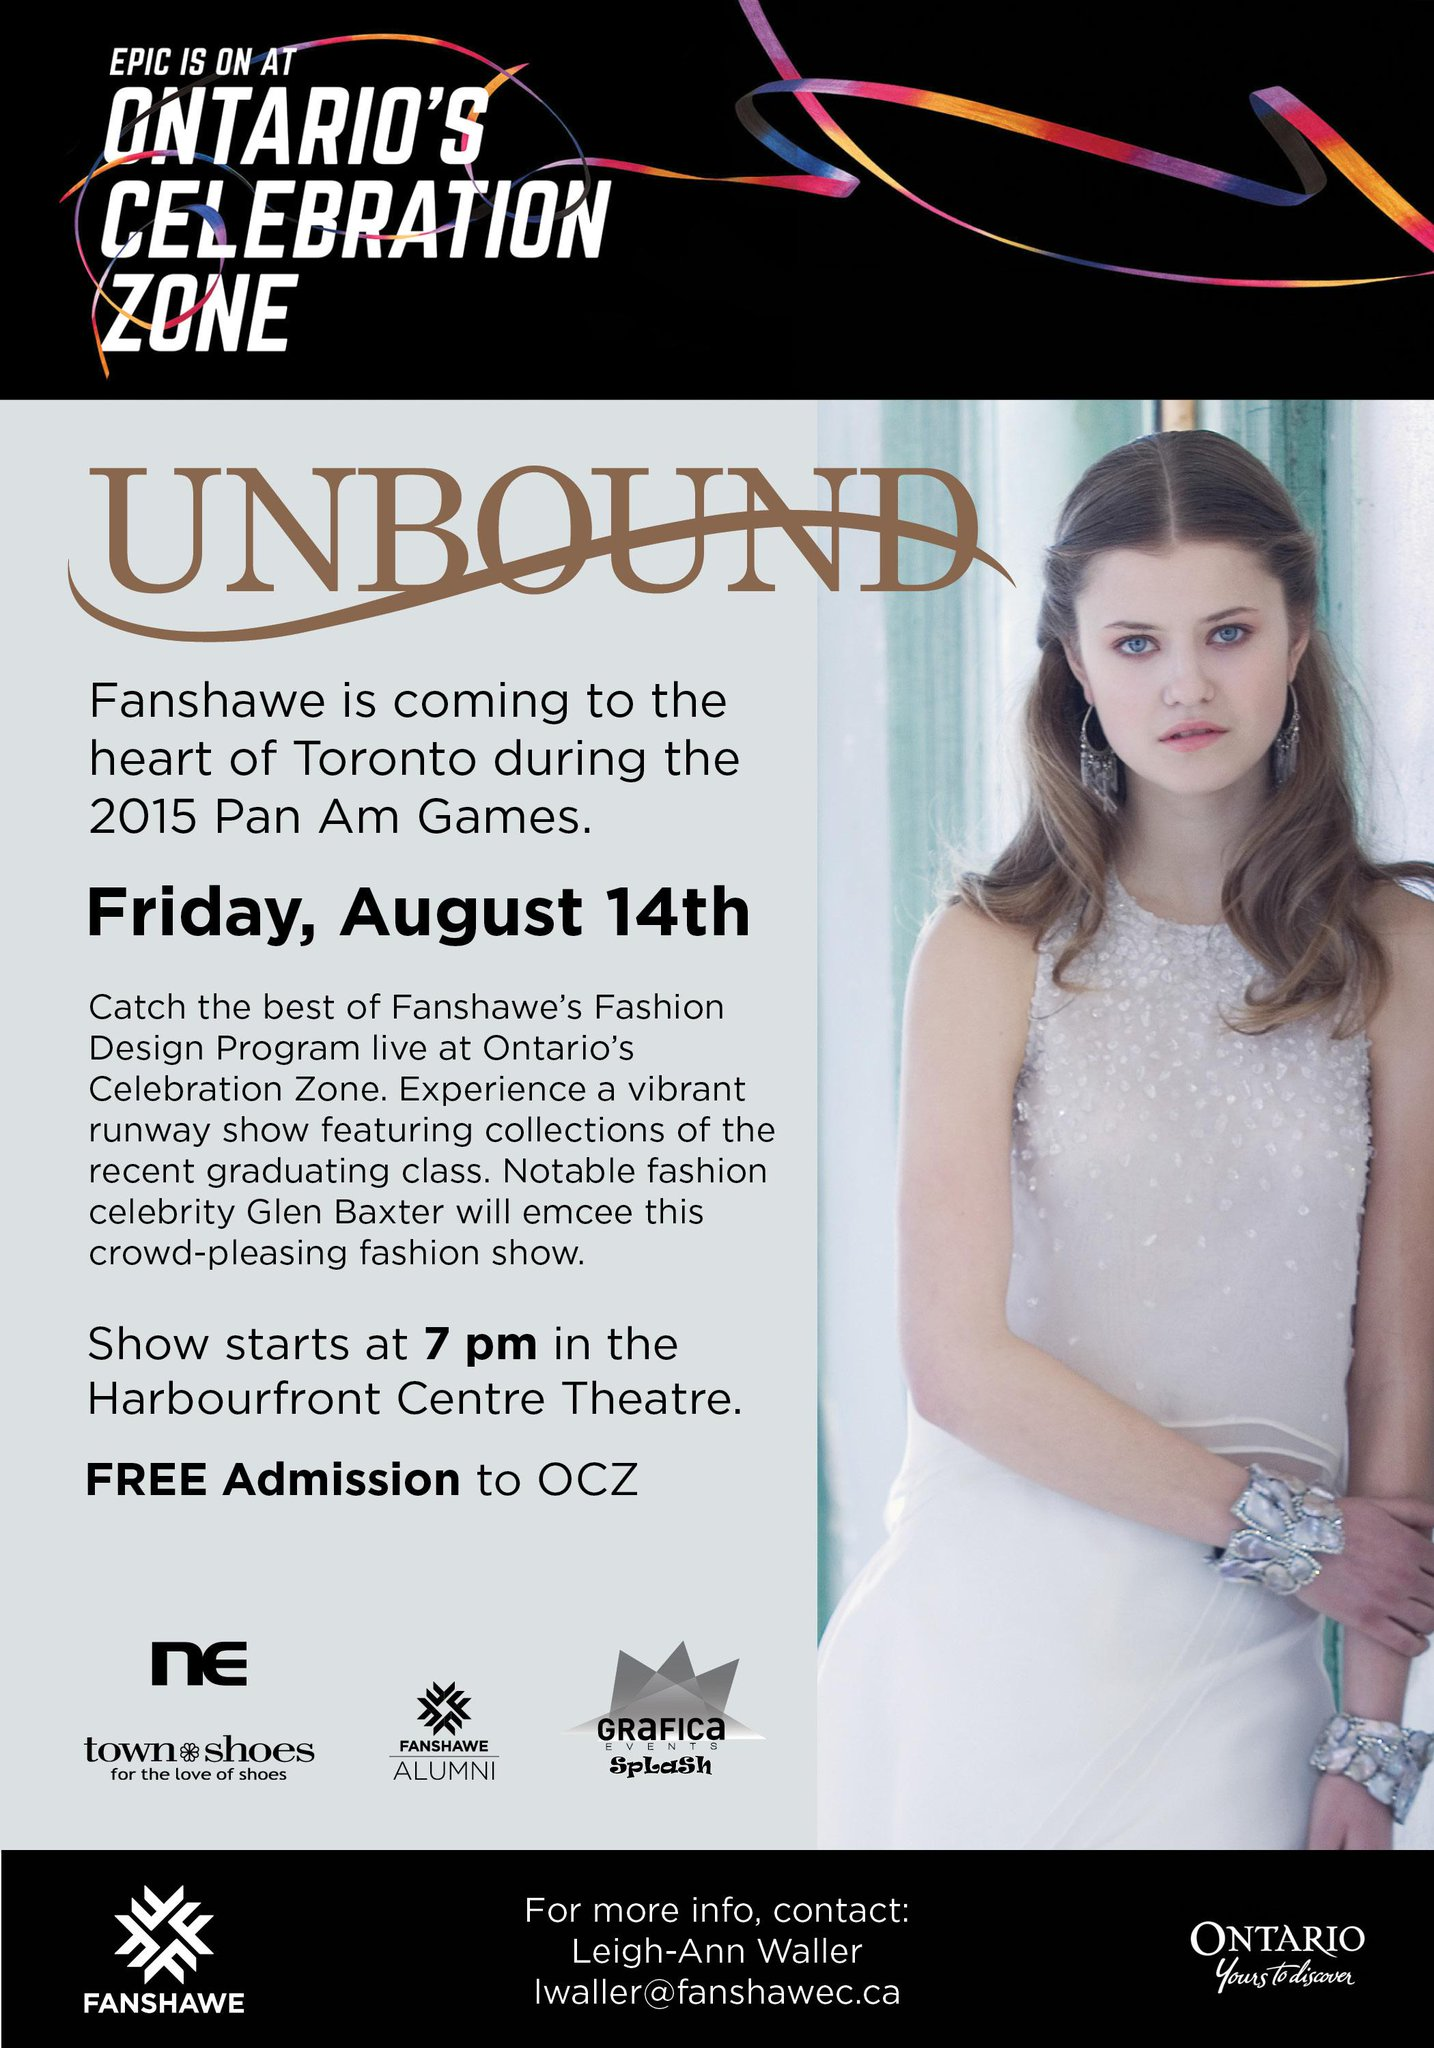 Fanshawecollege On Twitter Fanshawe S Fashion Design Program Arrives At The Parapan Am Games Friday To Remount Their 2015 Unbound Fashion Show Http T Co Aqjvqex7mk